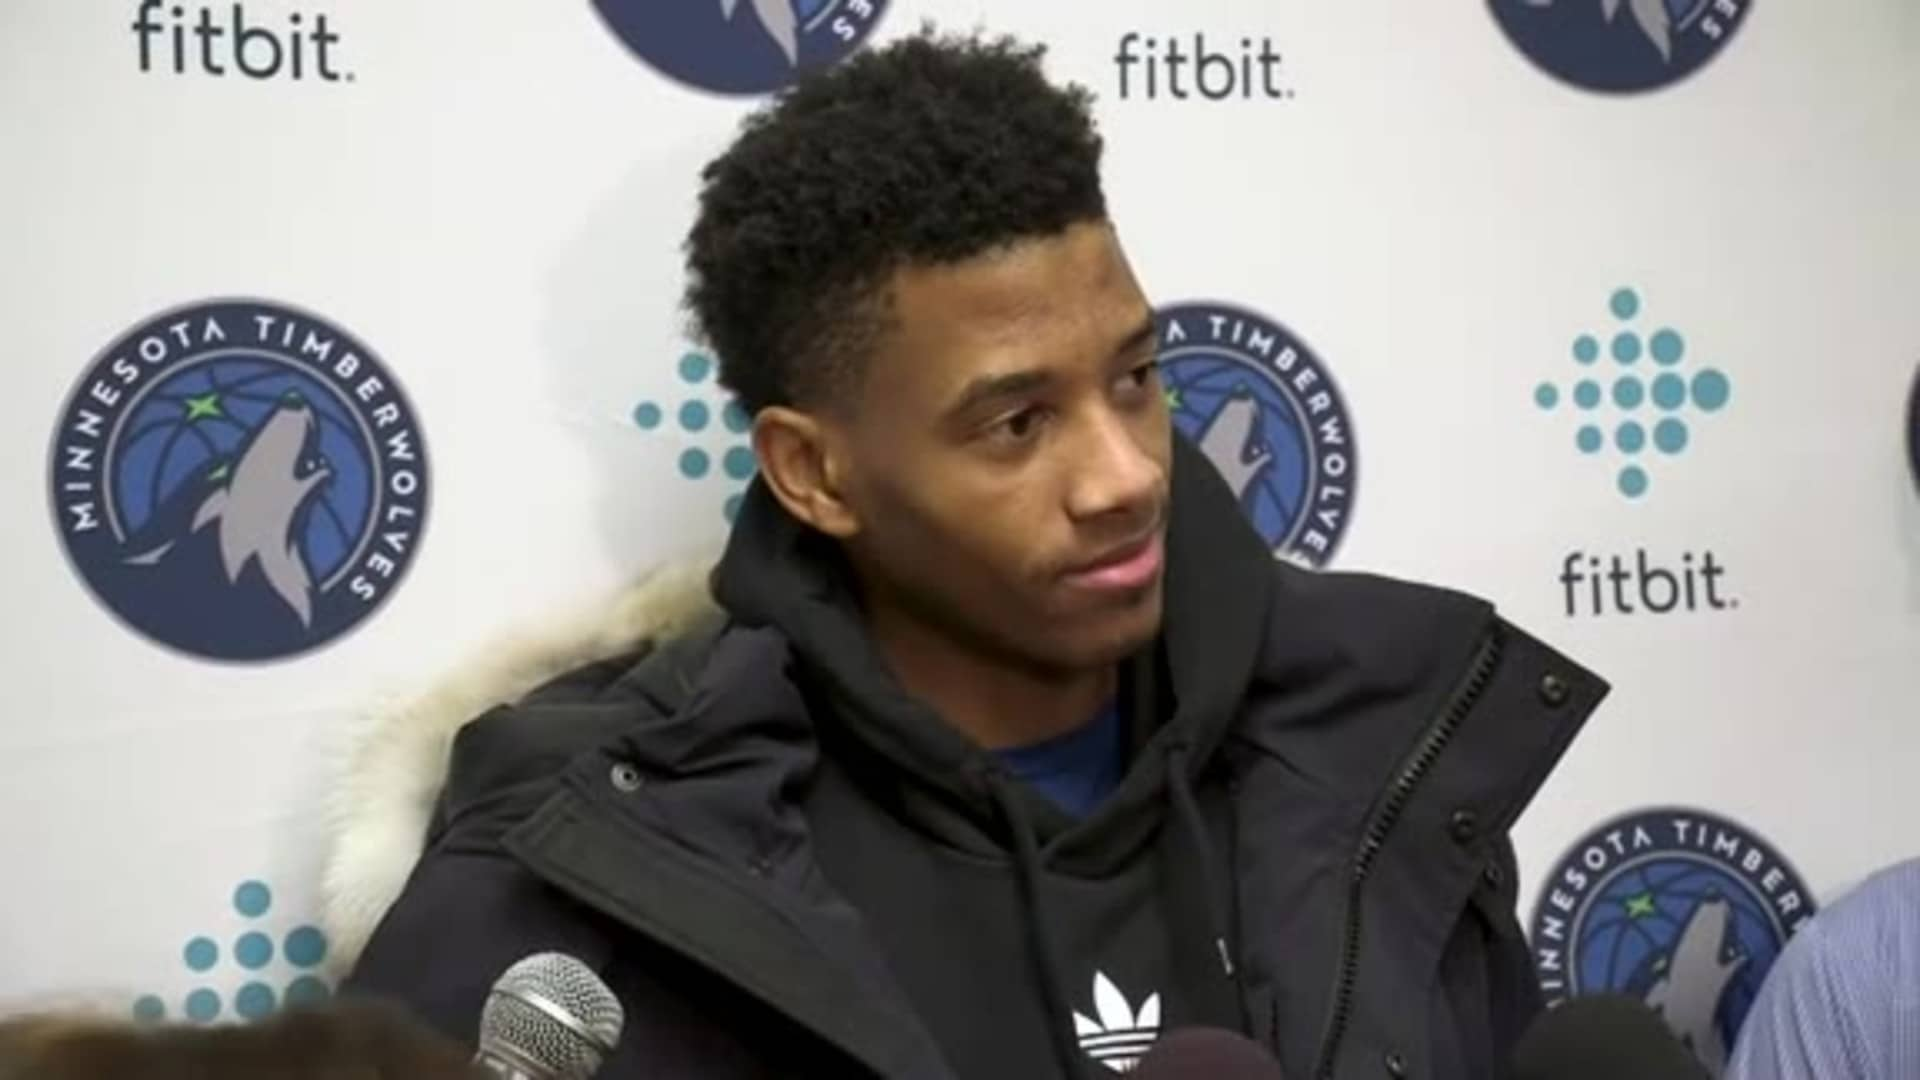 Timberwolves Guard Jarrett Culver On Brother's 100-Point Game (12.11.19)